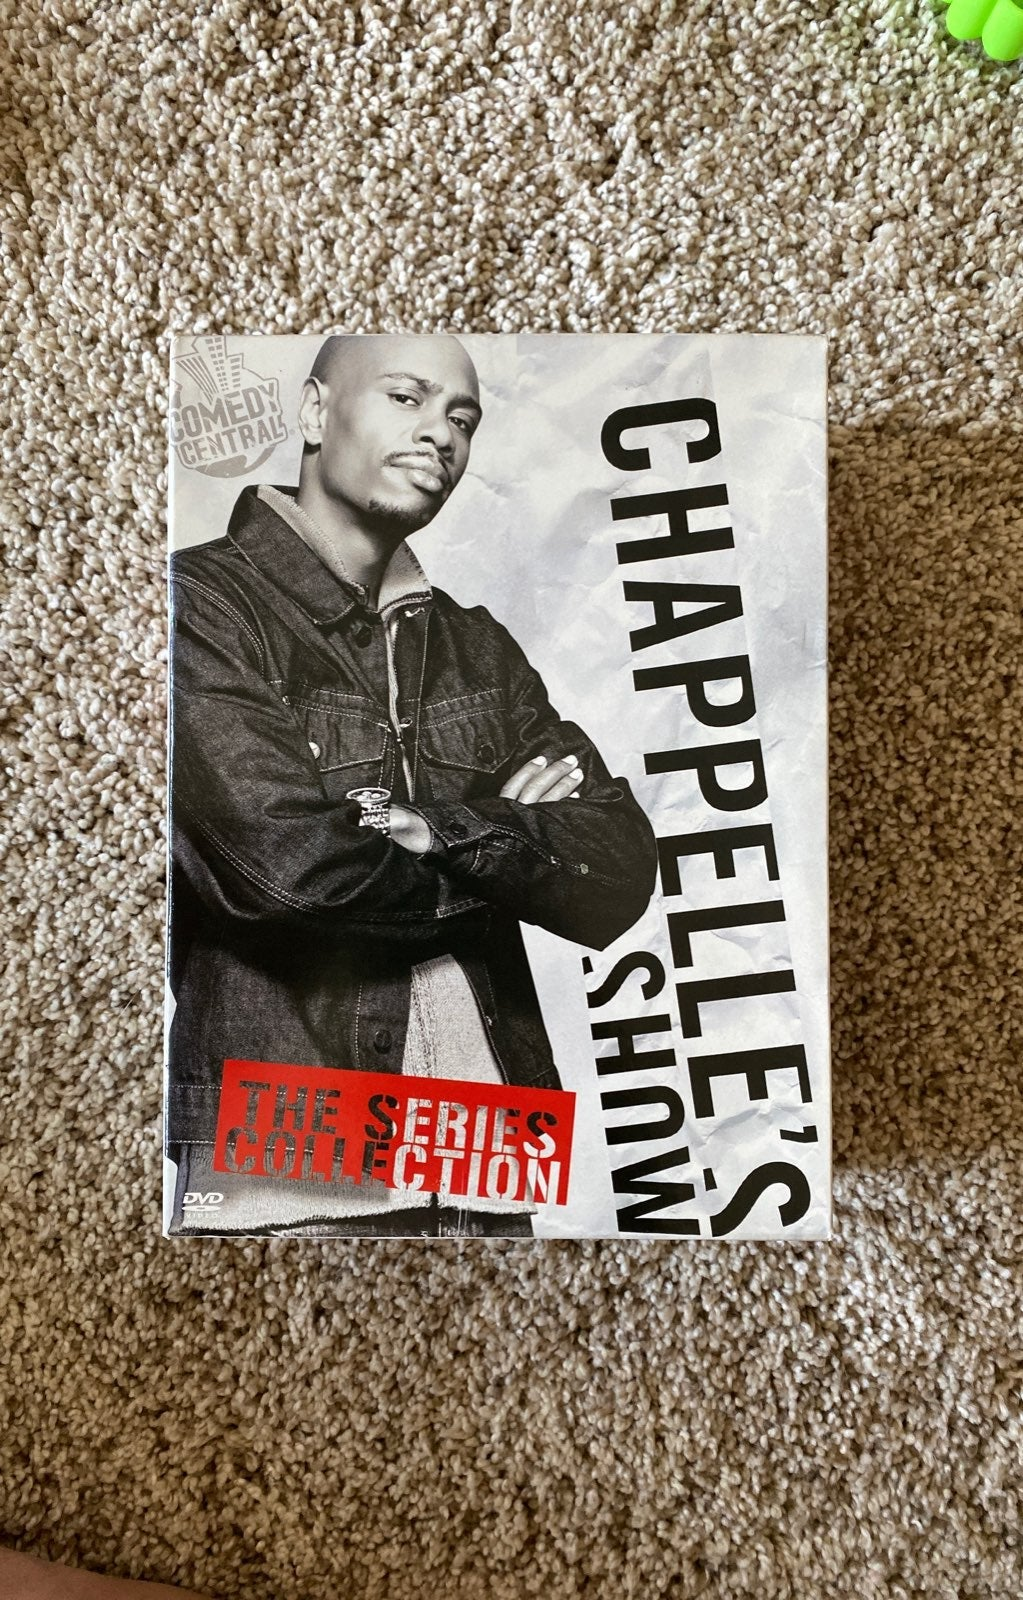 Dave Chappelle Series Collection